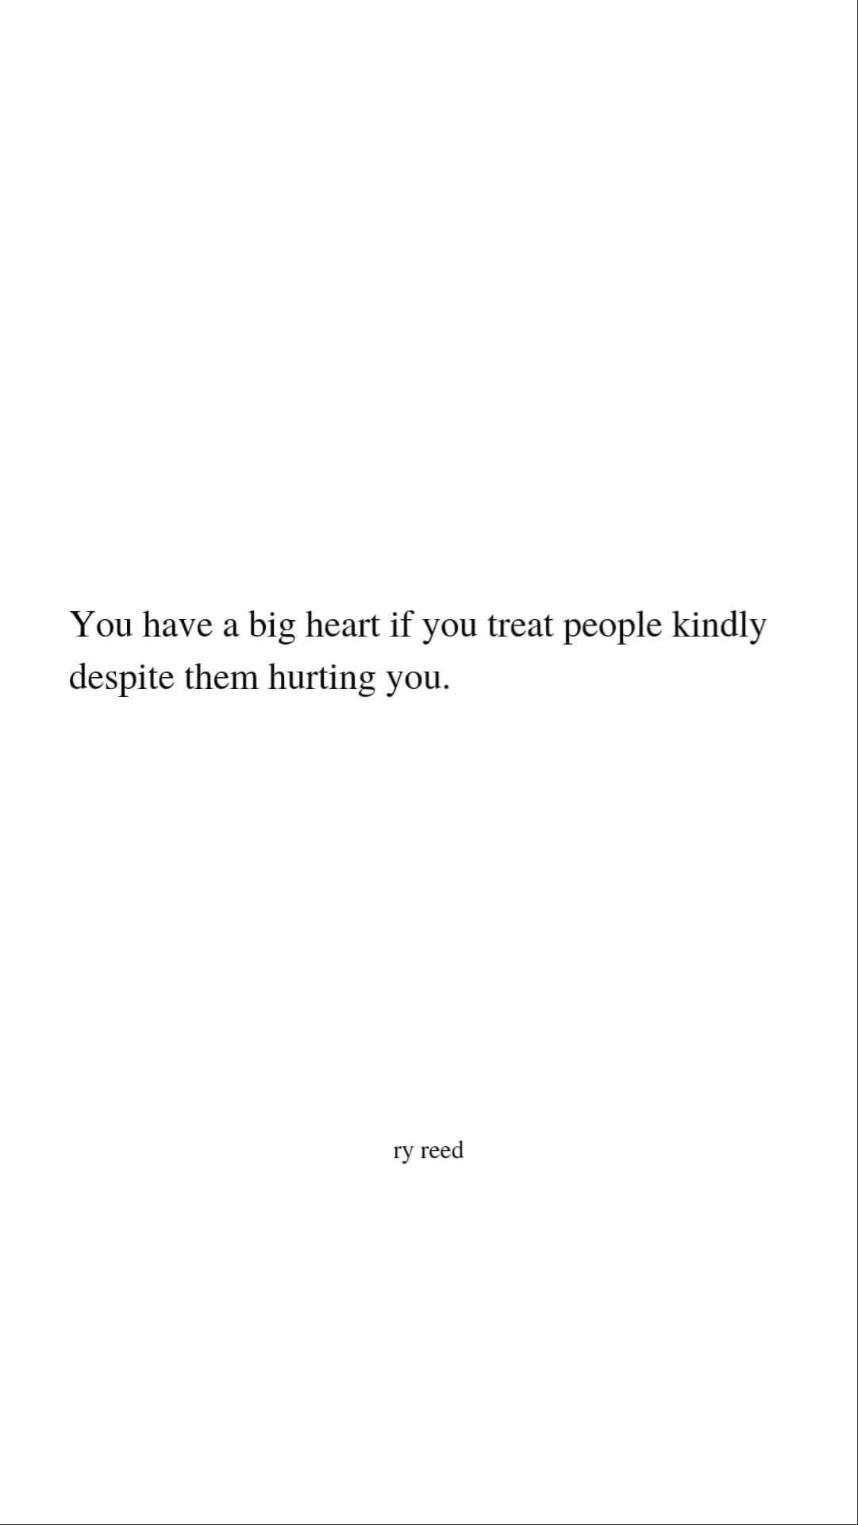 you're a rare breed